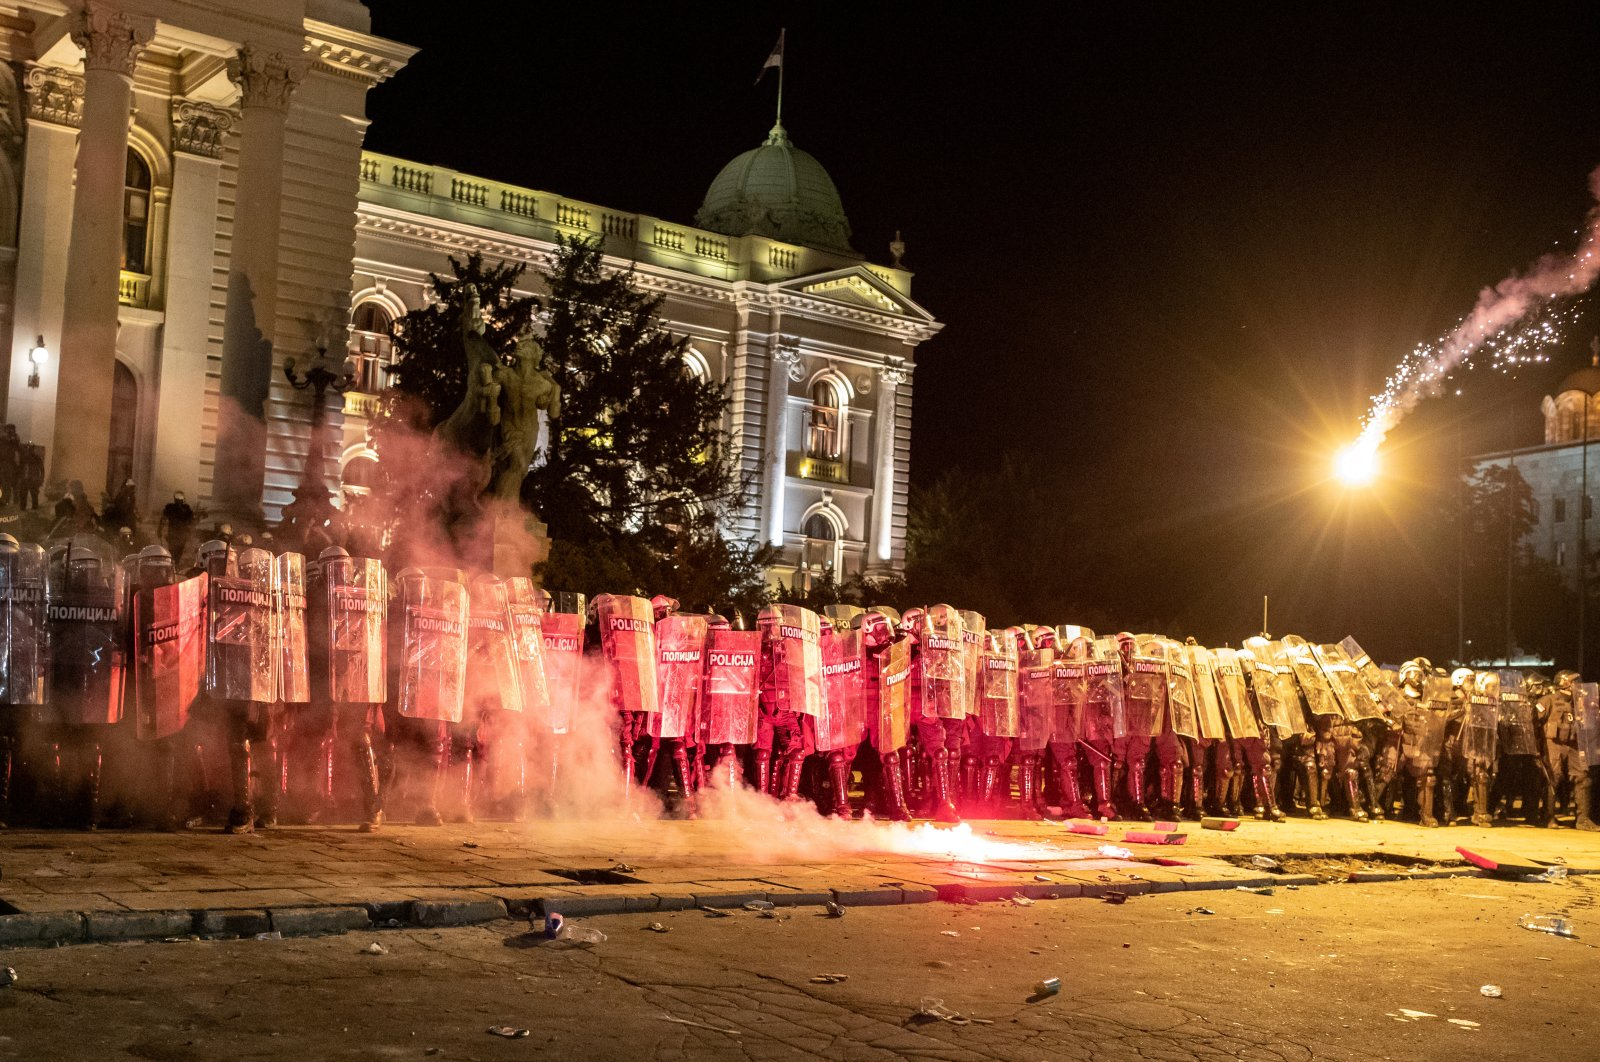 Demonstrators throw flares towards riot police at an anti-government protest amid the spread of the coronavirus disease (COVID-19), outside the parliament building in Belgrade, Serbia, July 10, 2020. (Reuters Photo)